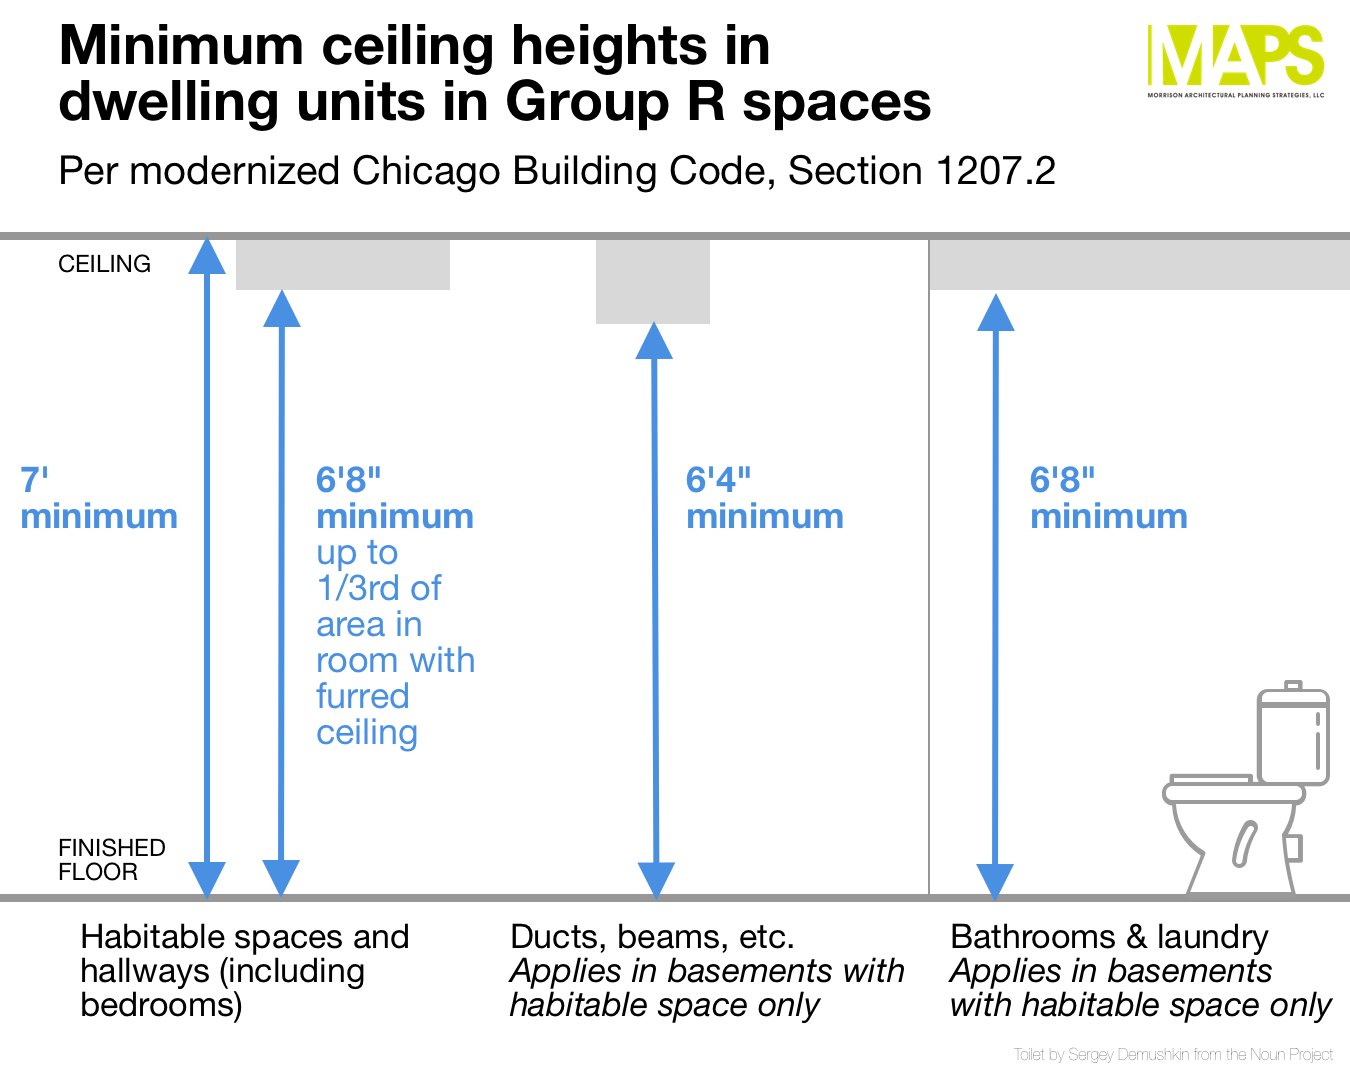 Map Strategies New Building Code Drops Minimum Ceiling Heights For Residential Uses